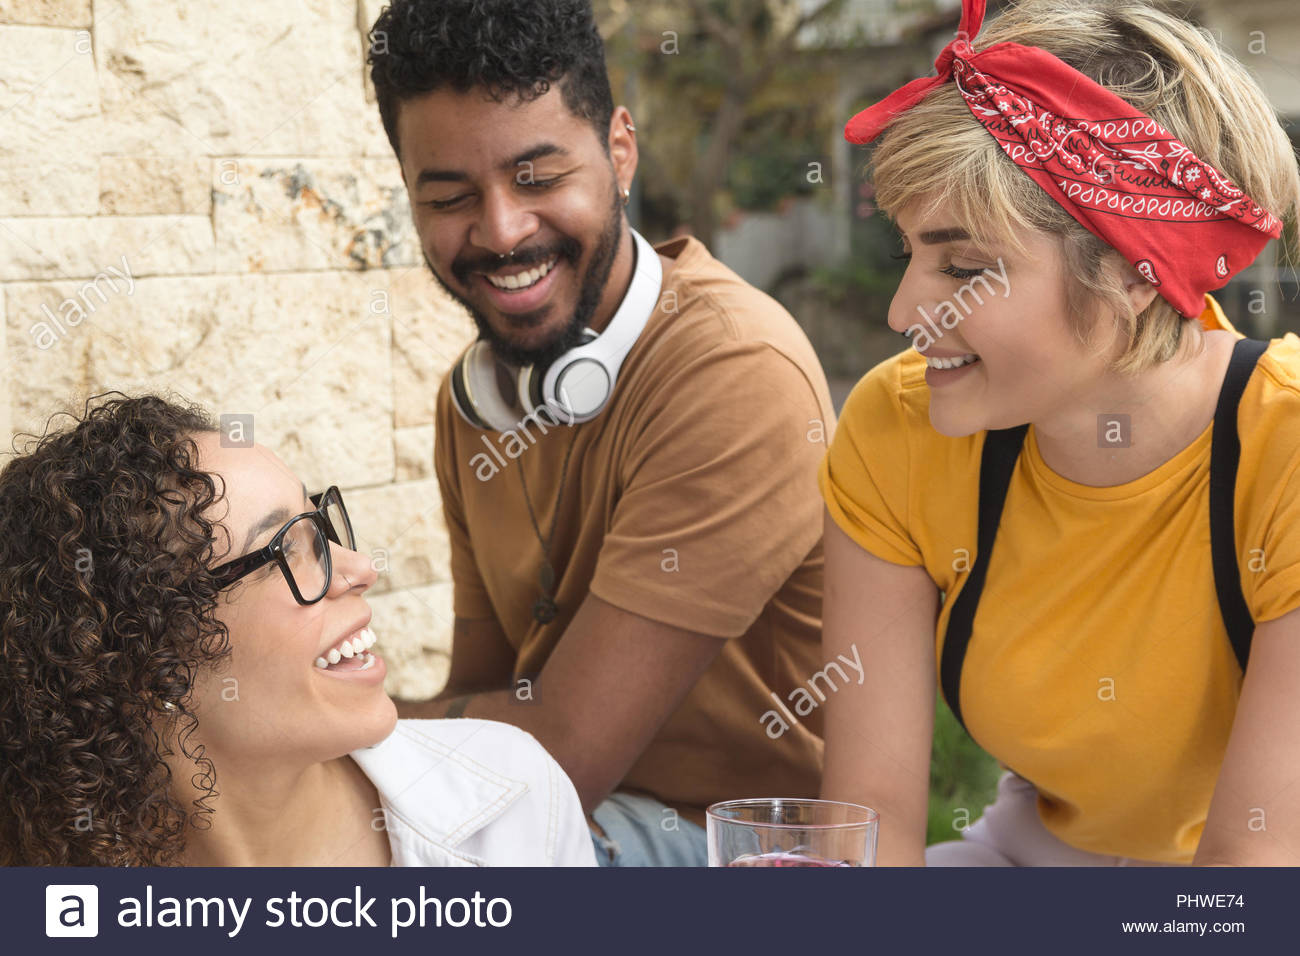 Cheerful young friends smiling and sitting  at restaurant outside. Group of people having fun together at cafe bar outdoor. Spring, warm, togetherness - Stock Image